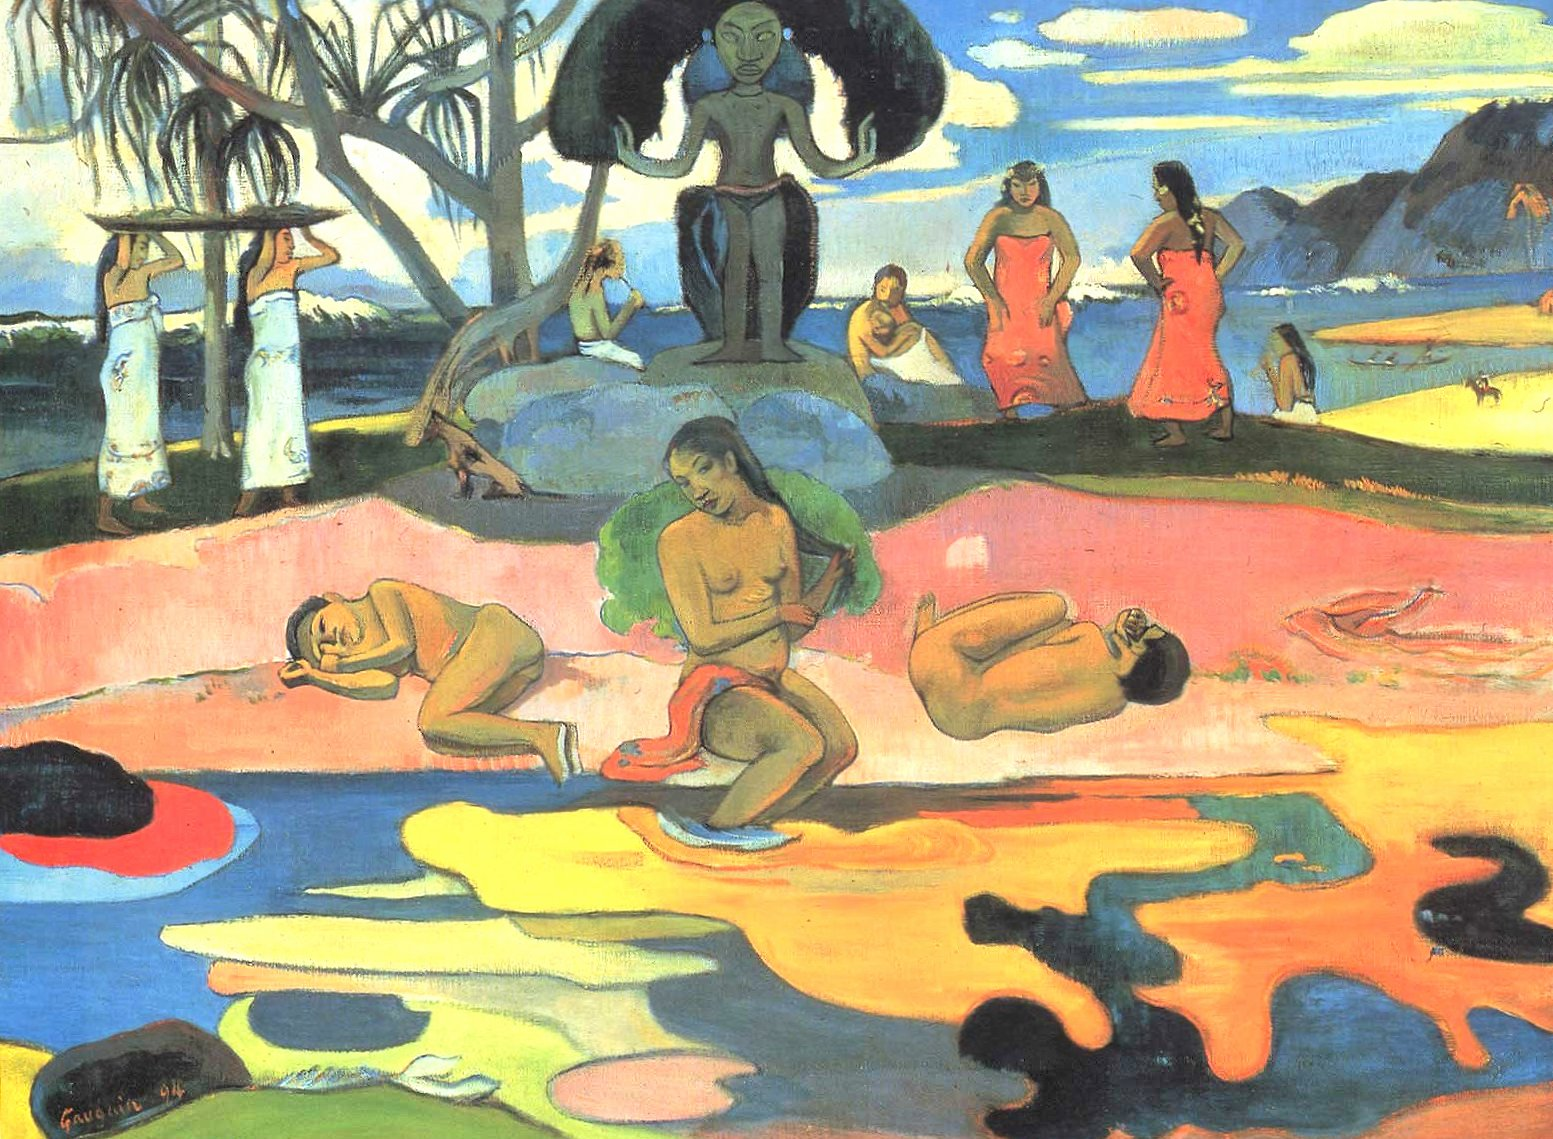 Paul gauguin the day of the gods at 2048 x 2048 iPad size wallpapers HD quality